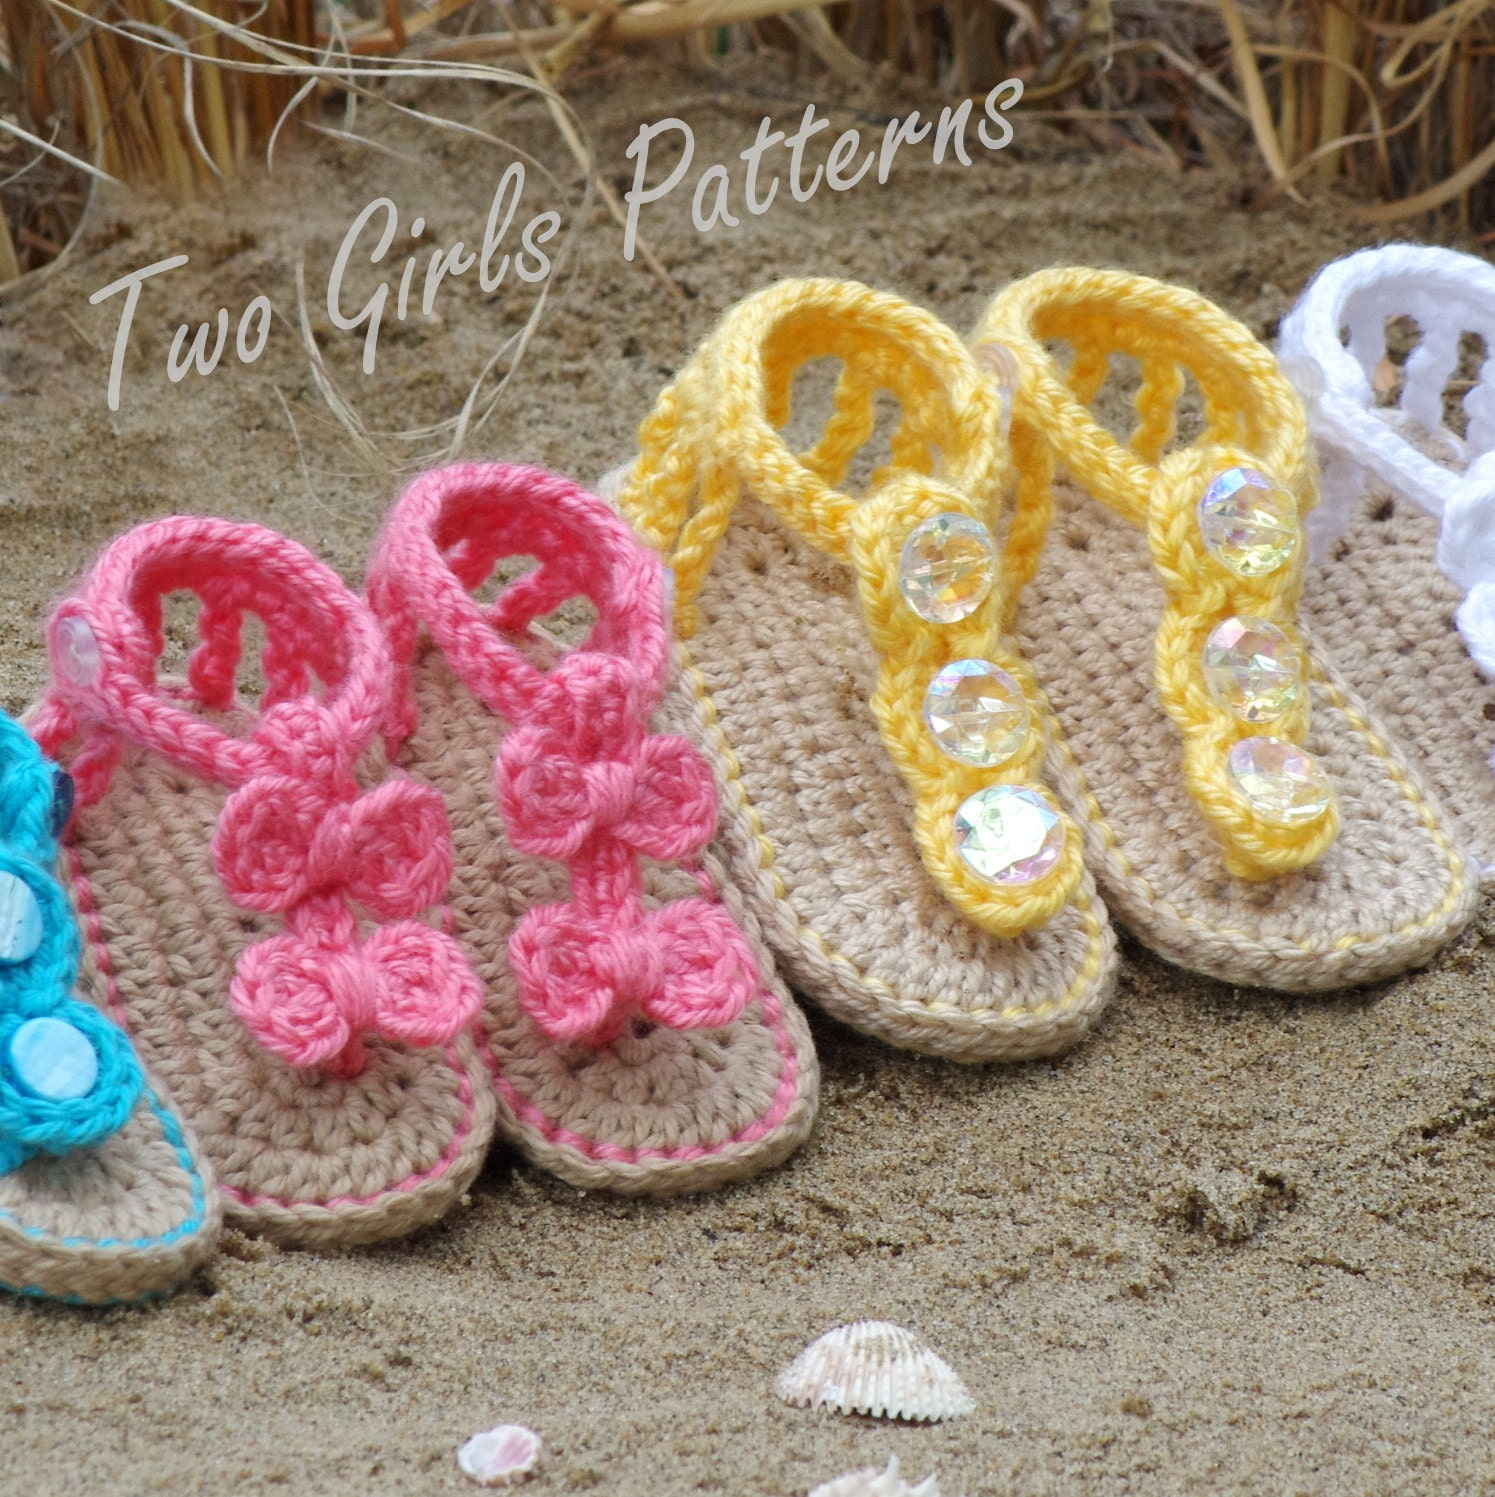 Crochet Pattern For Baby Barefoot Sandals : Baby crochet pattern sandal 2 Versions and Free barefoot